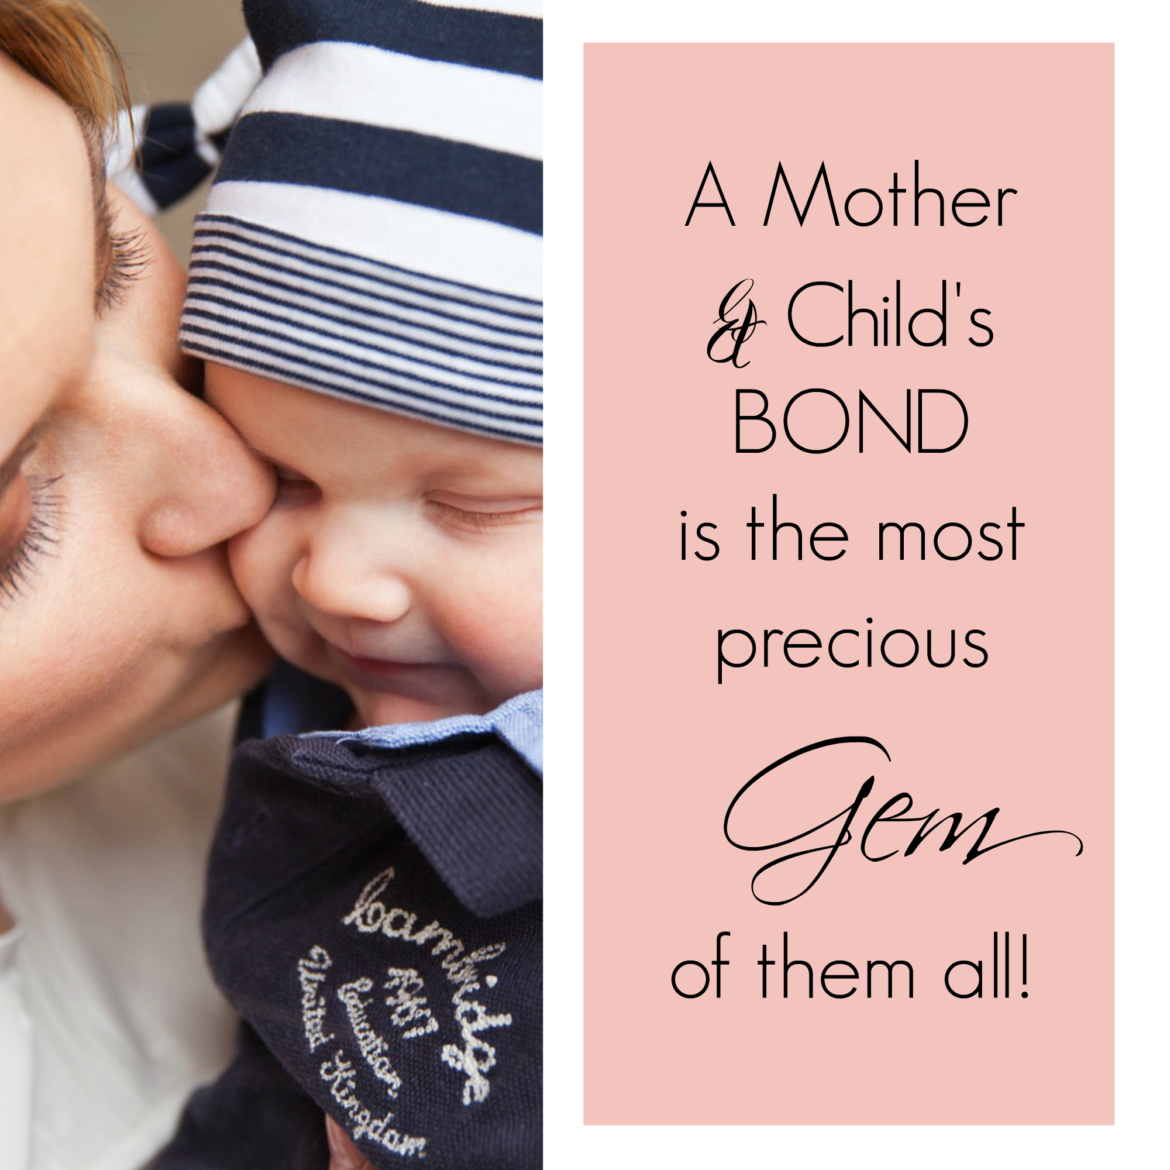 Mother and Child - A Mother & Child's BOND is the most precious GEM of them all!